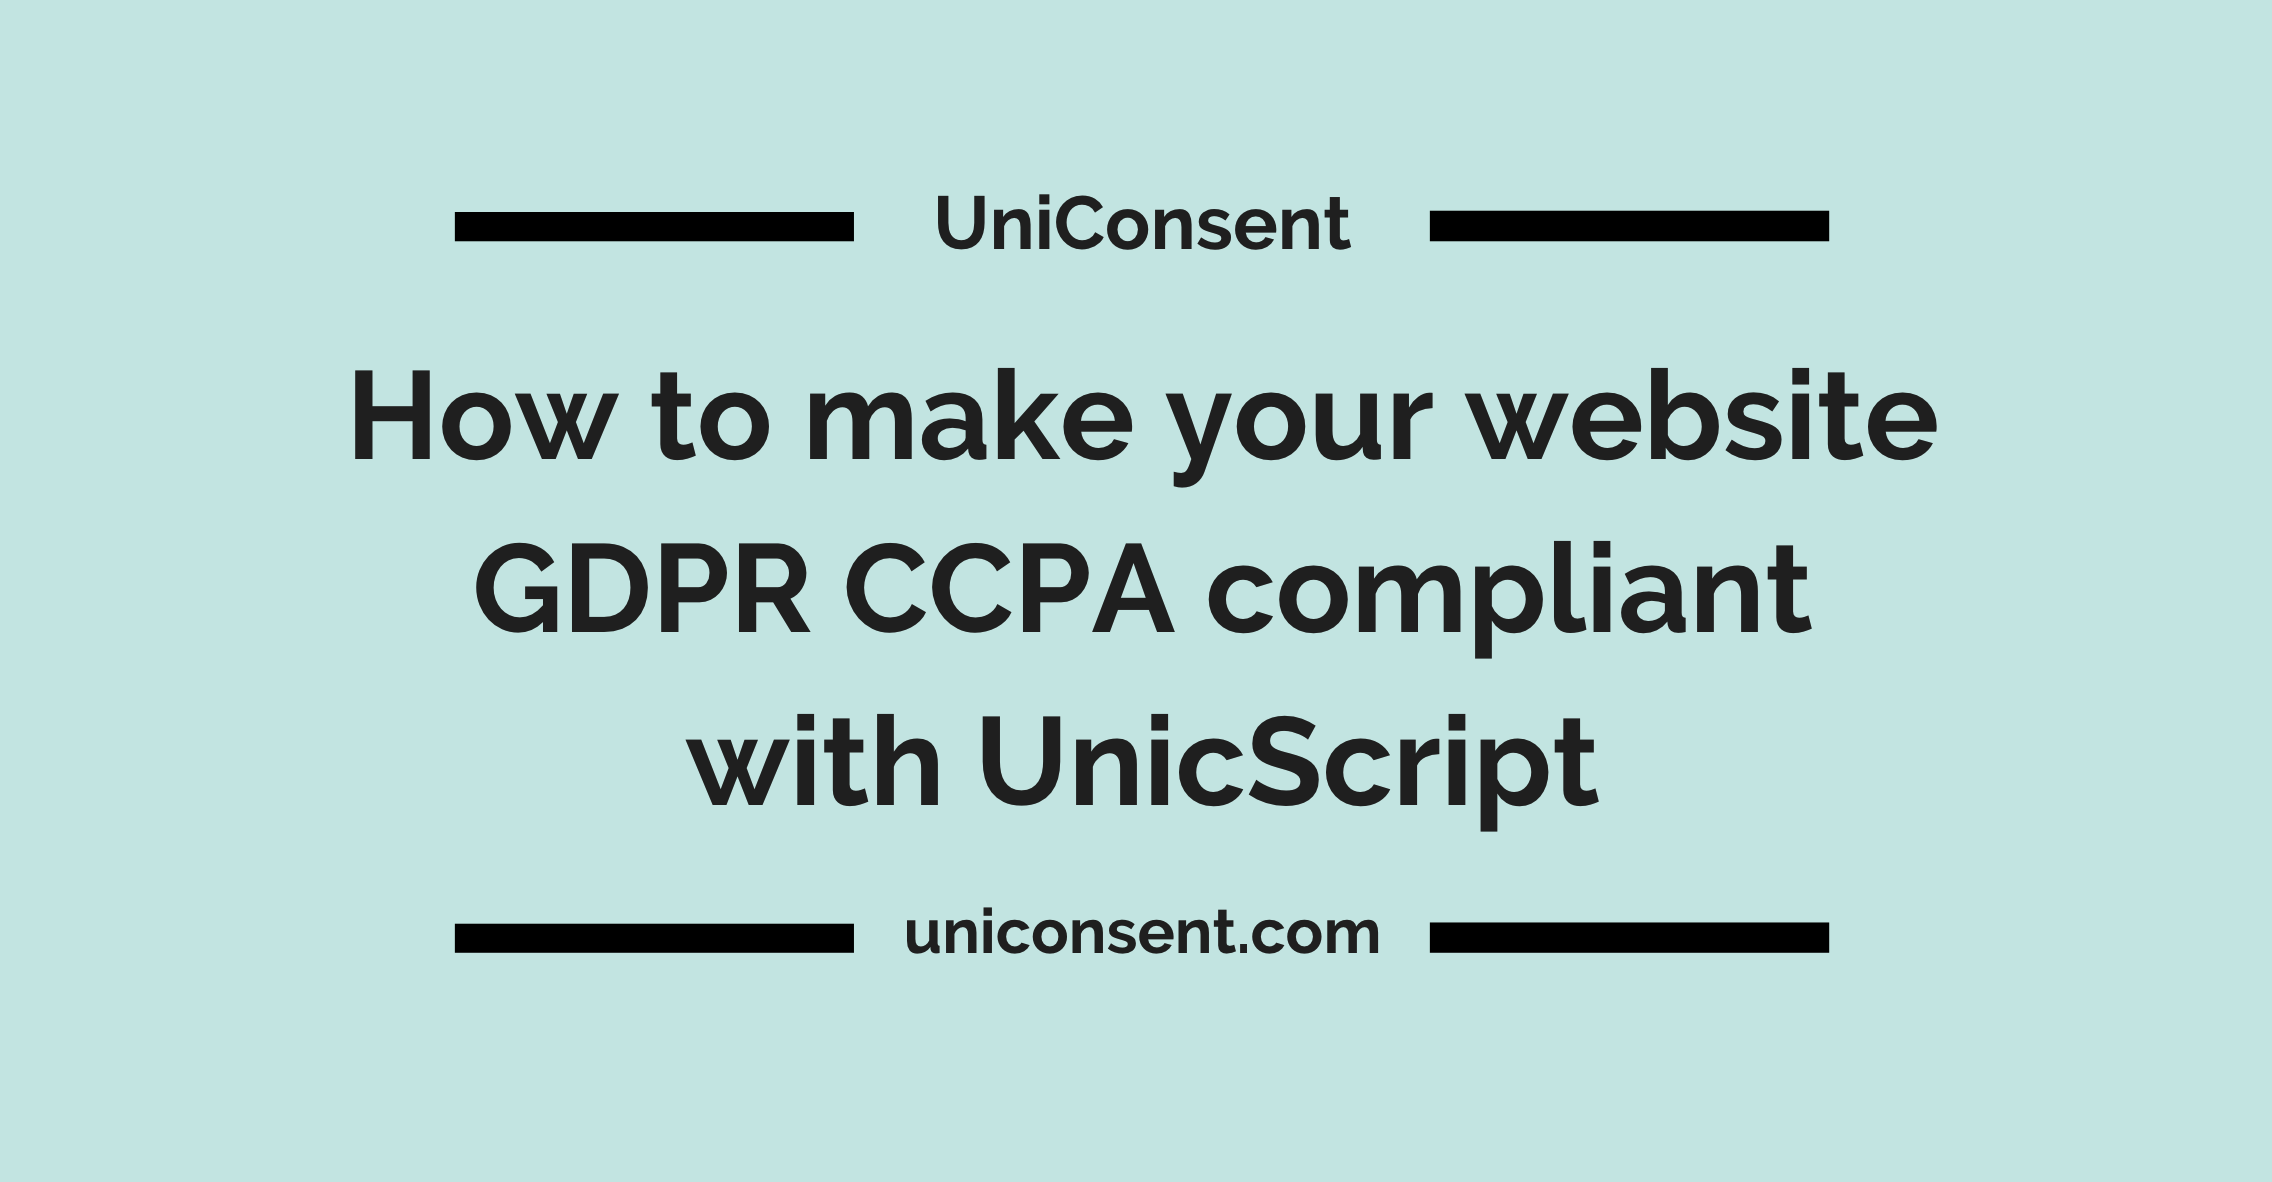 How to make your website GDPR CCPA compliant with UnicScript